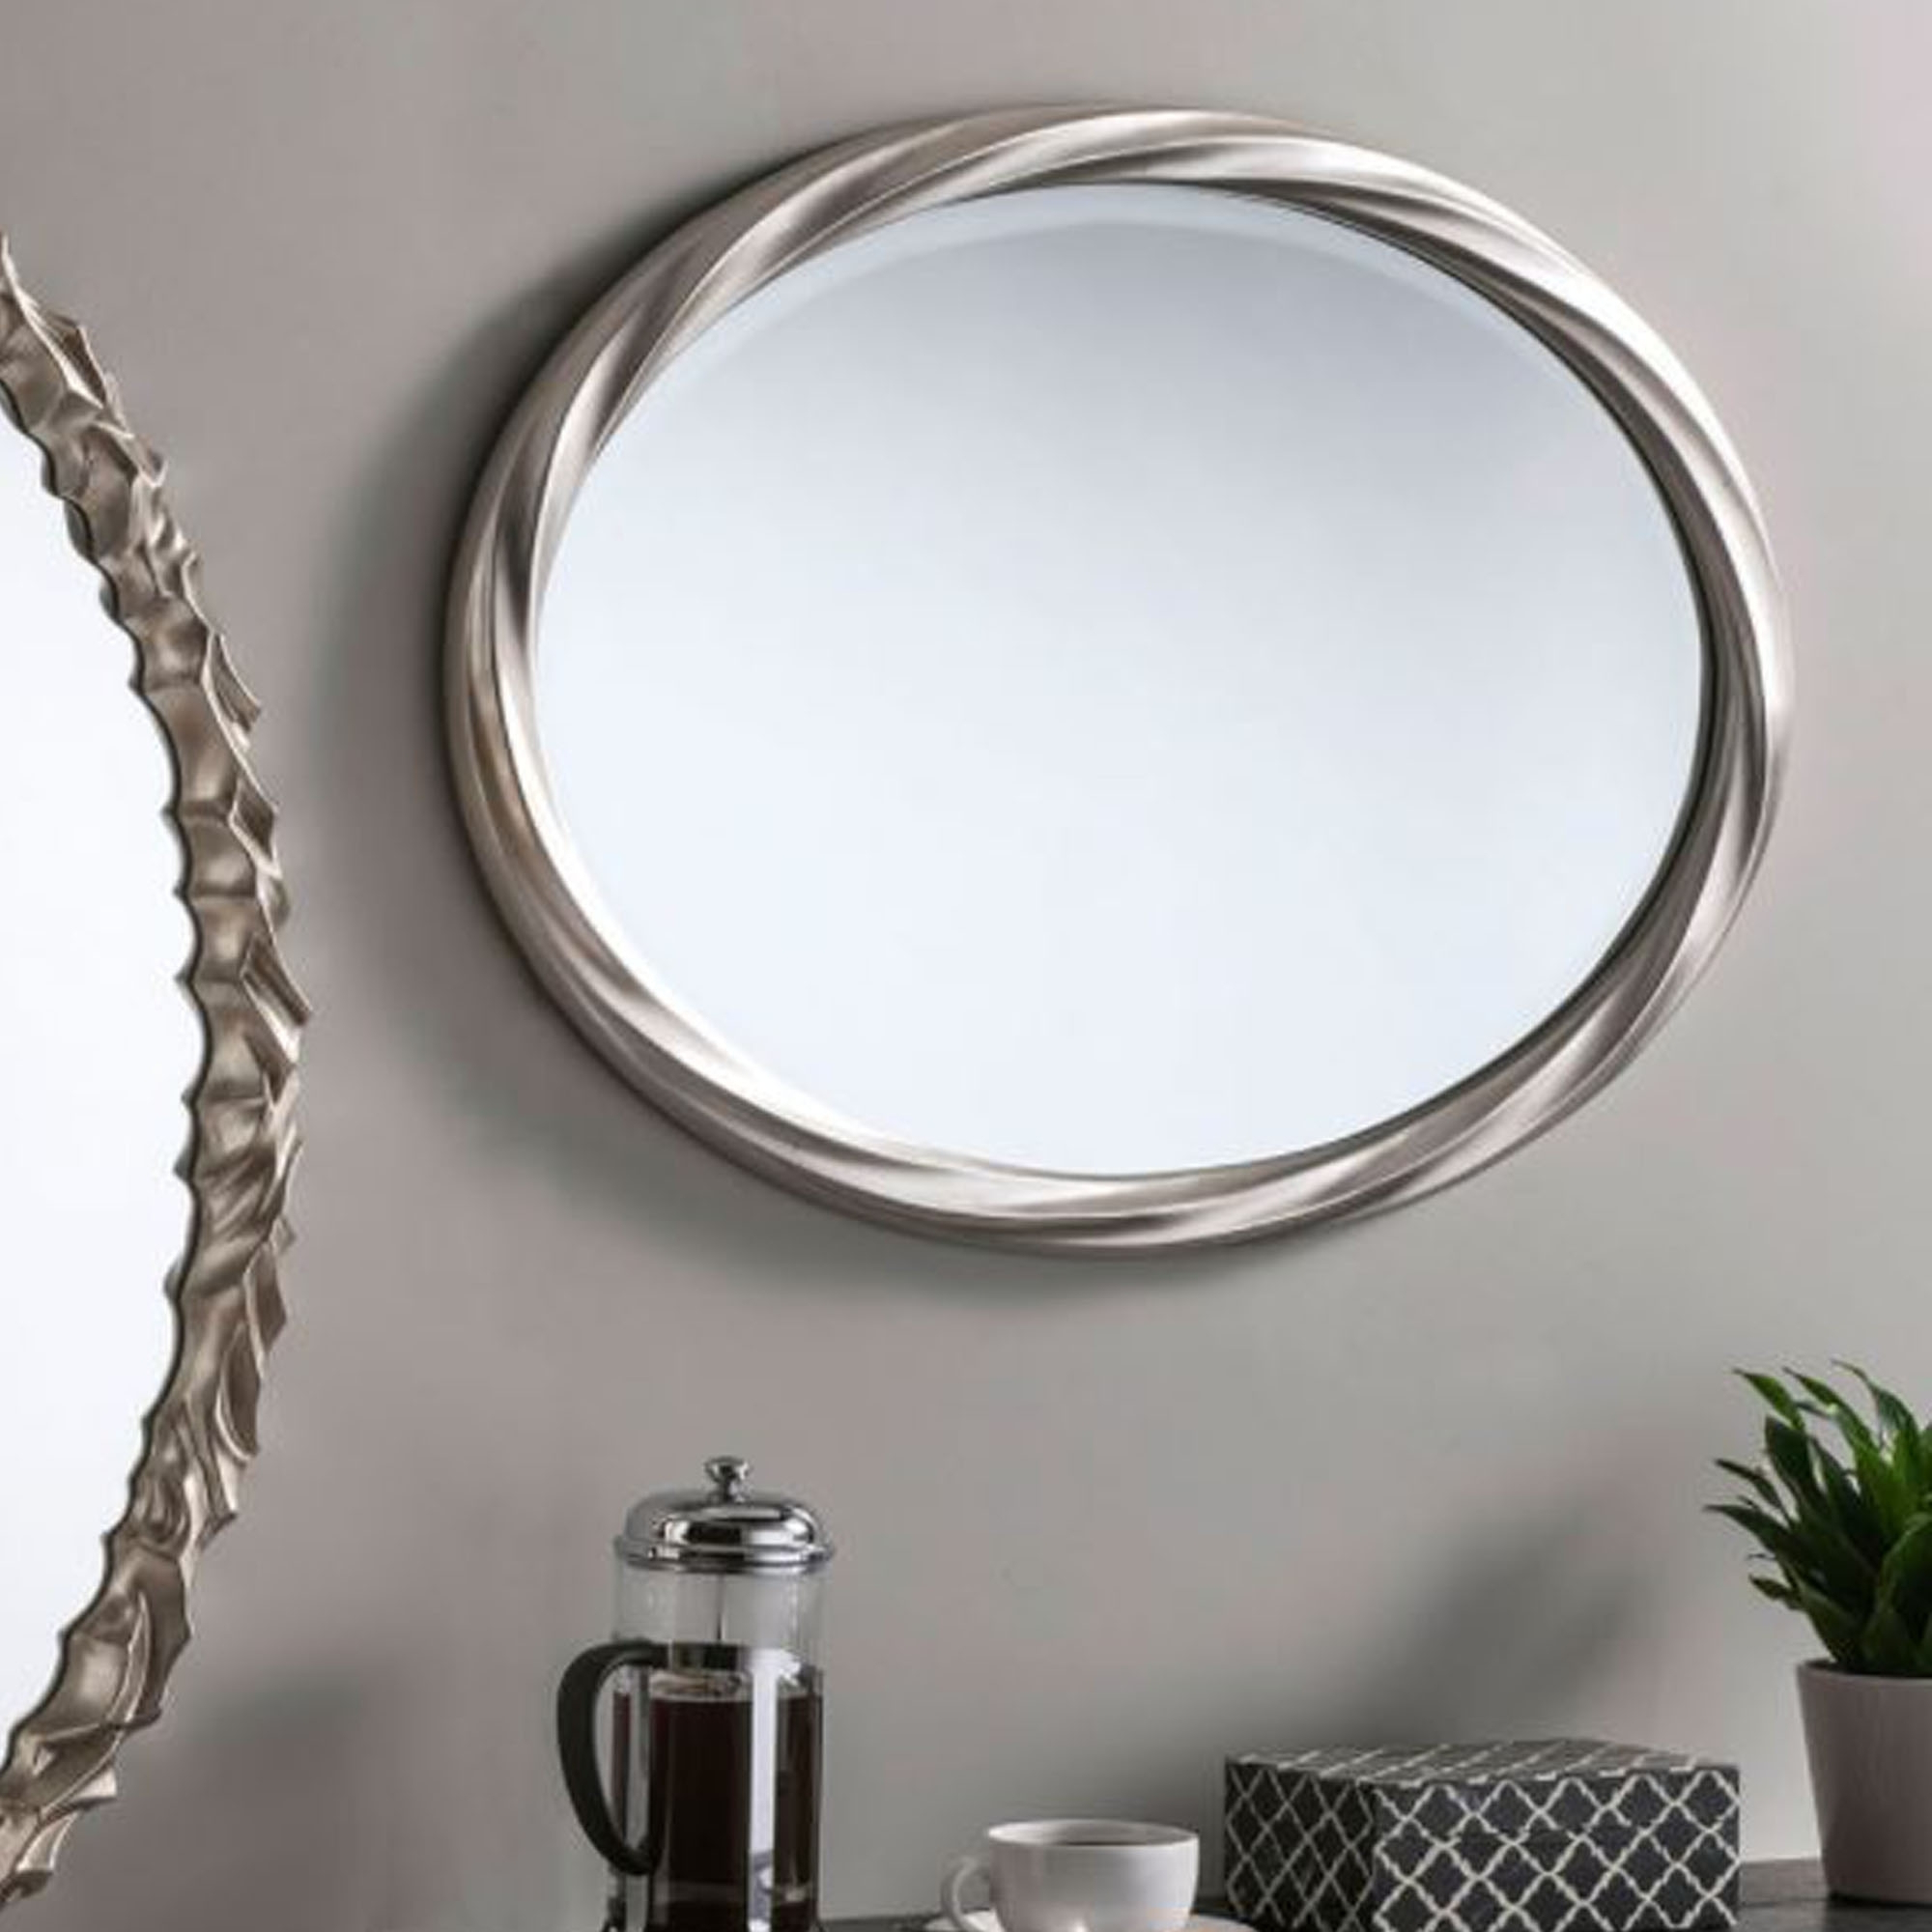 Famous Swirl Silver Oval Wall Mirror Pertaining To Silver Oval Wall Mirrors (Gallery 1 of 20)